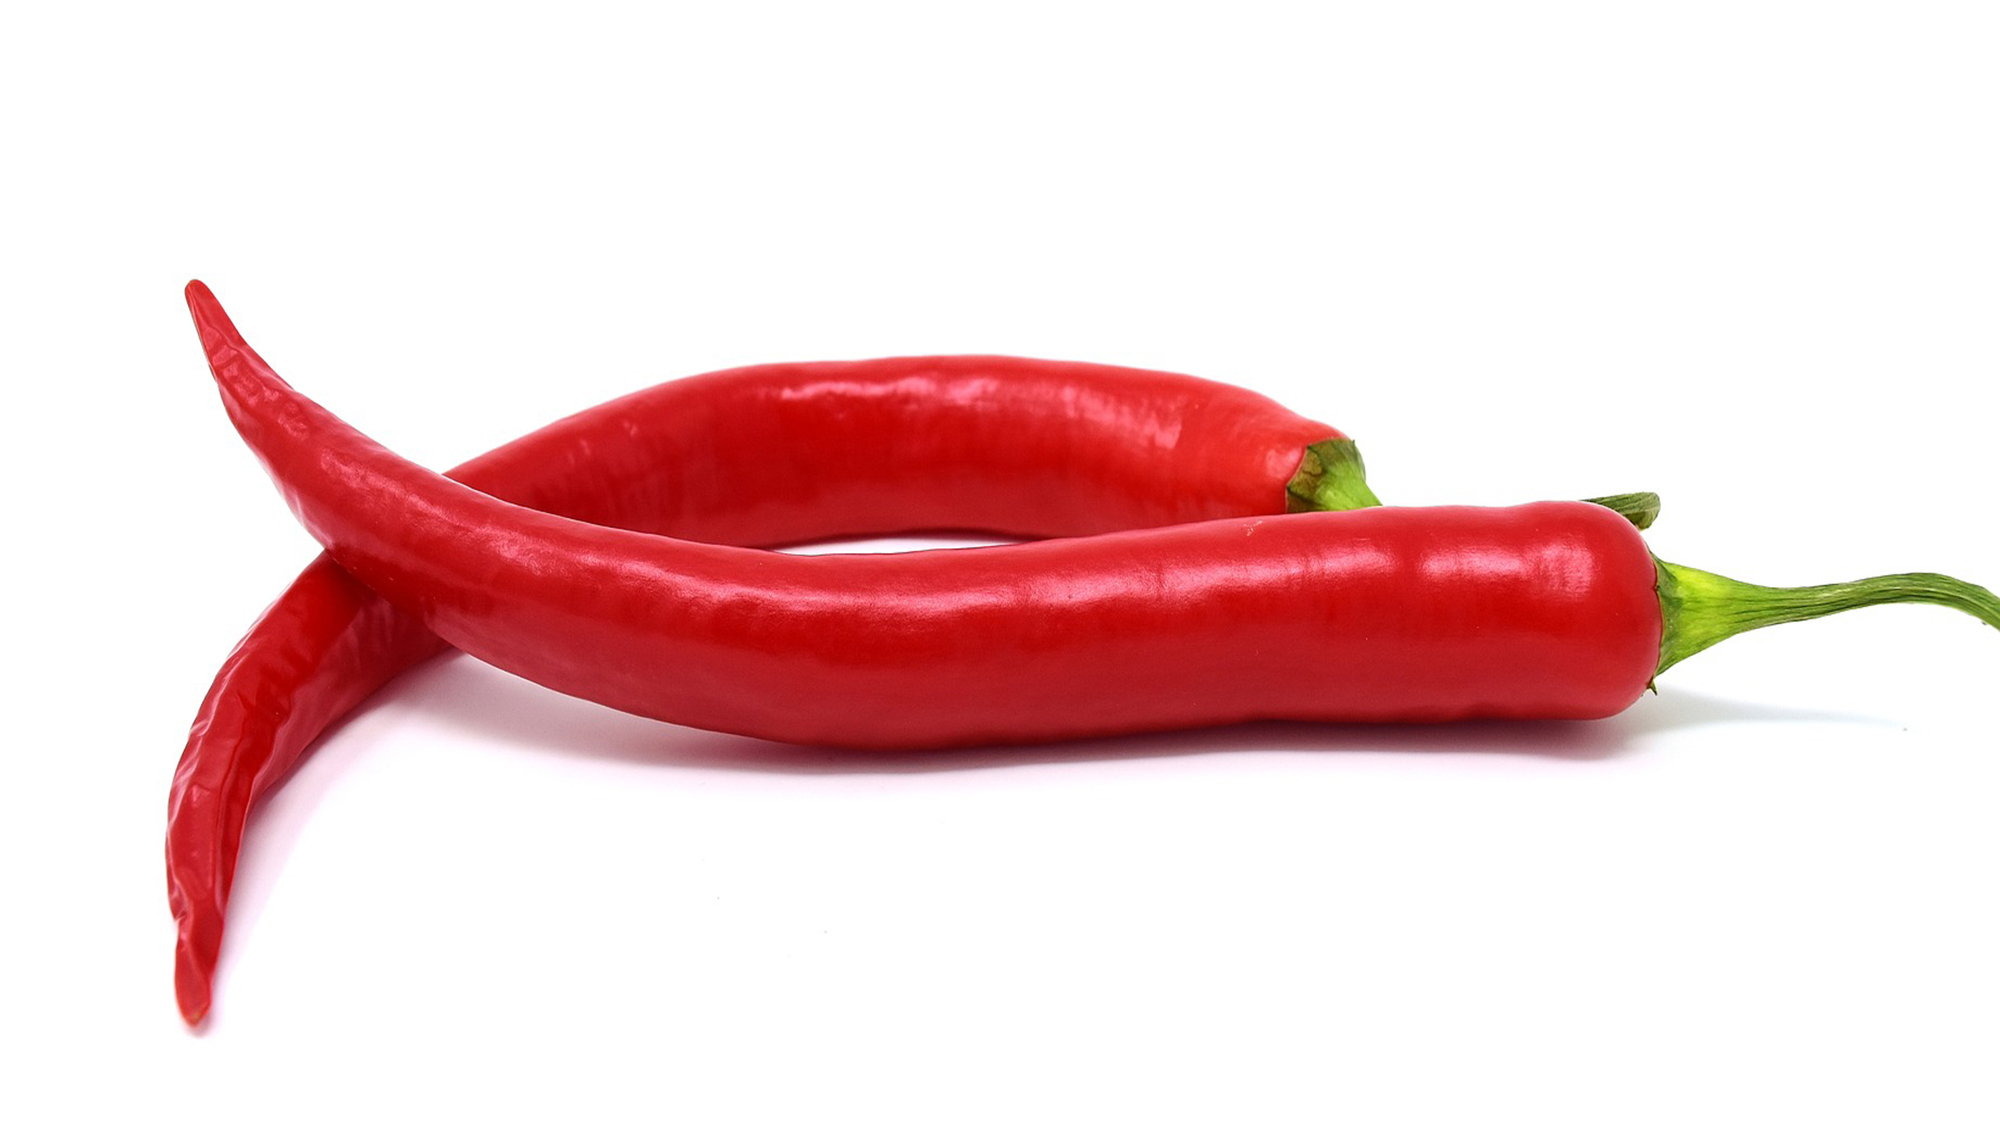 Capsaicin, the substance that gives peppers their kick, was the focus of the winner project. Photo Pixabay.